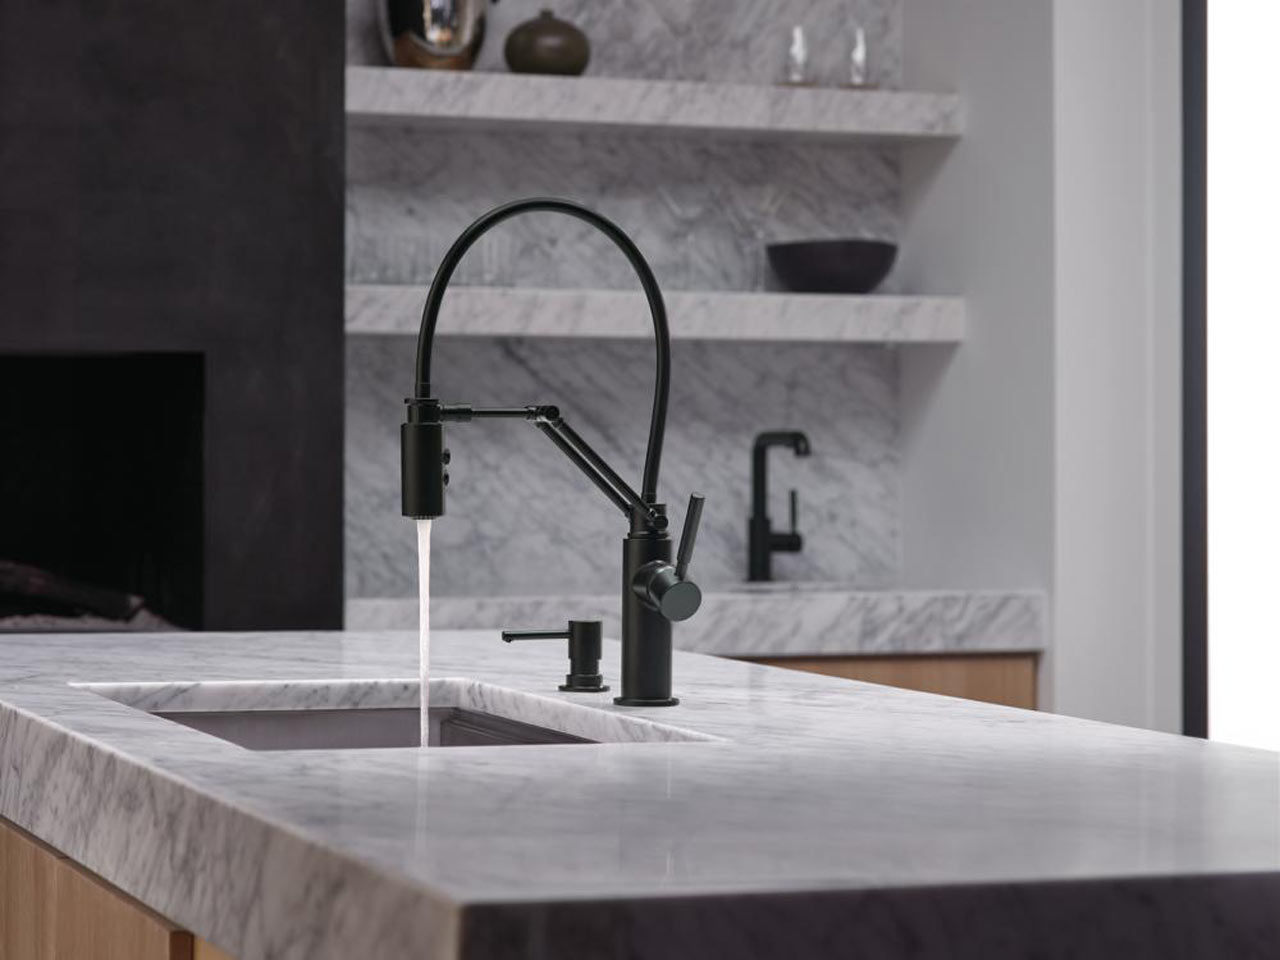 ssonwhite kitchen aesthetic of lovely debuts solna best and htsrec brizo brand arm com faucet photos functionality articulating enhanced